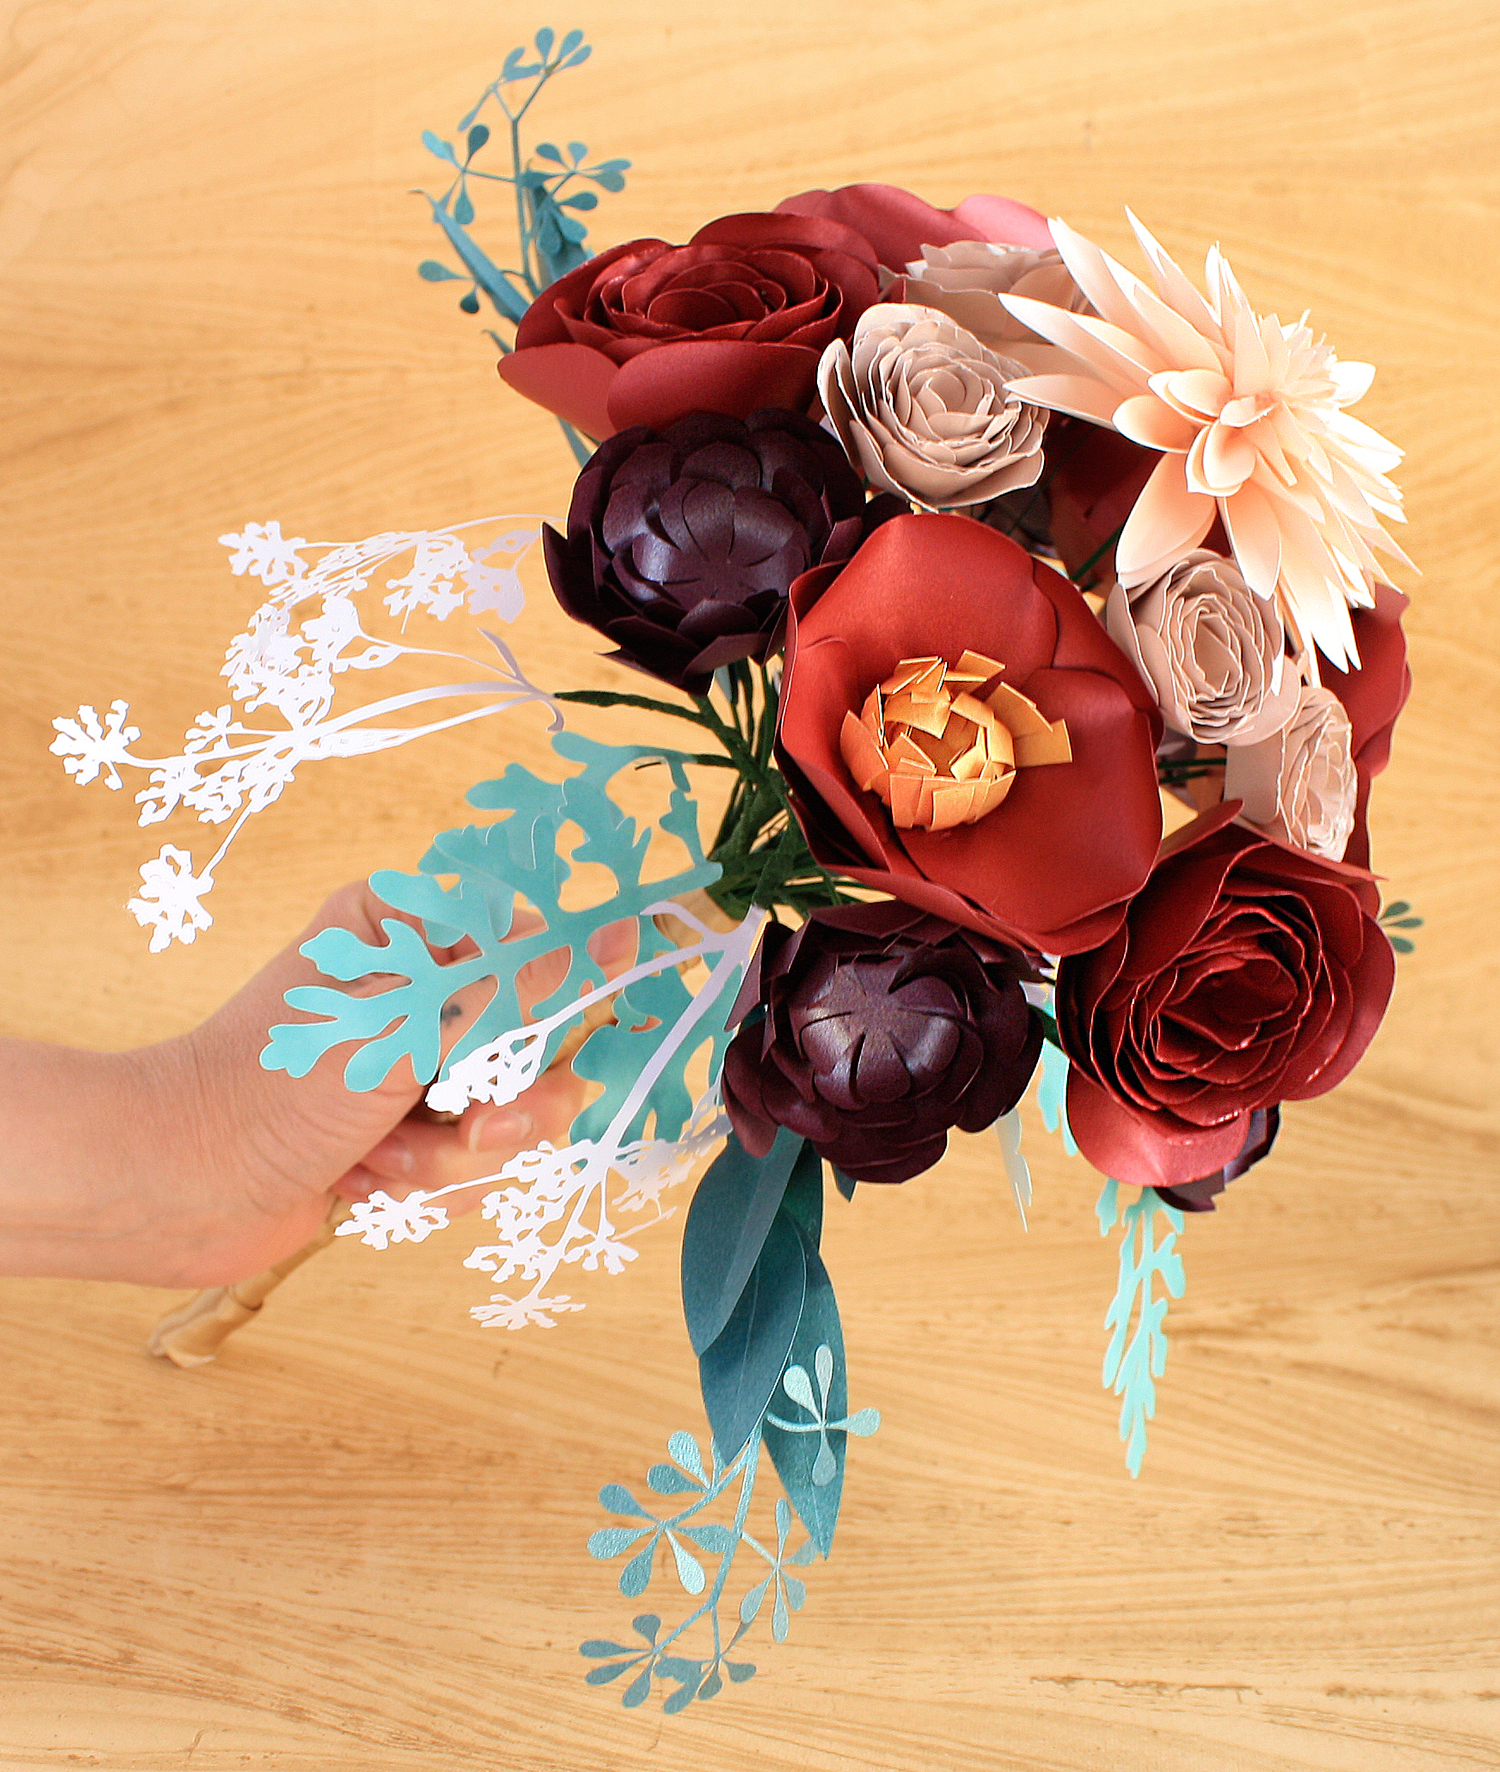 large-bouquet-in-hand-front-view.jpg